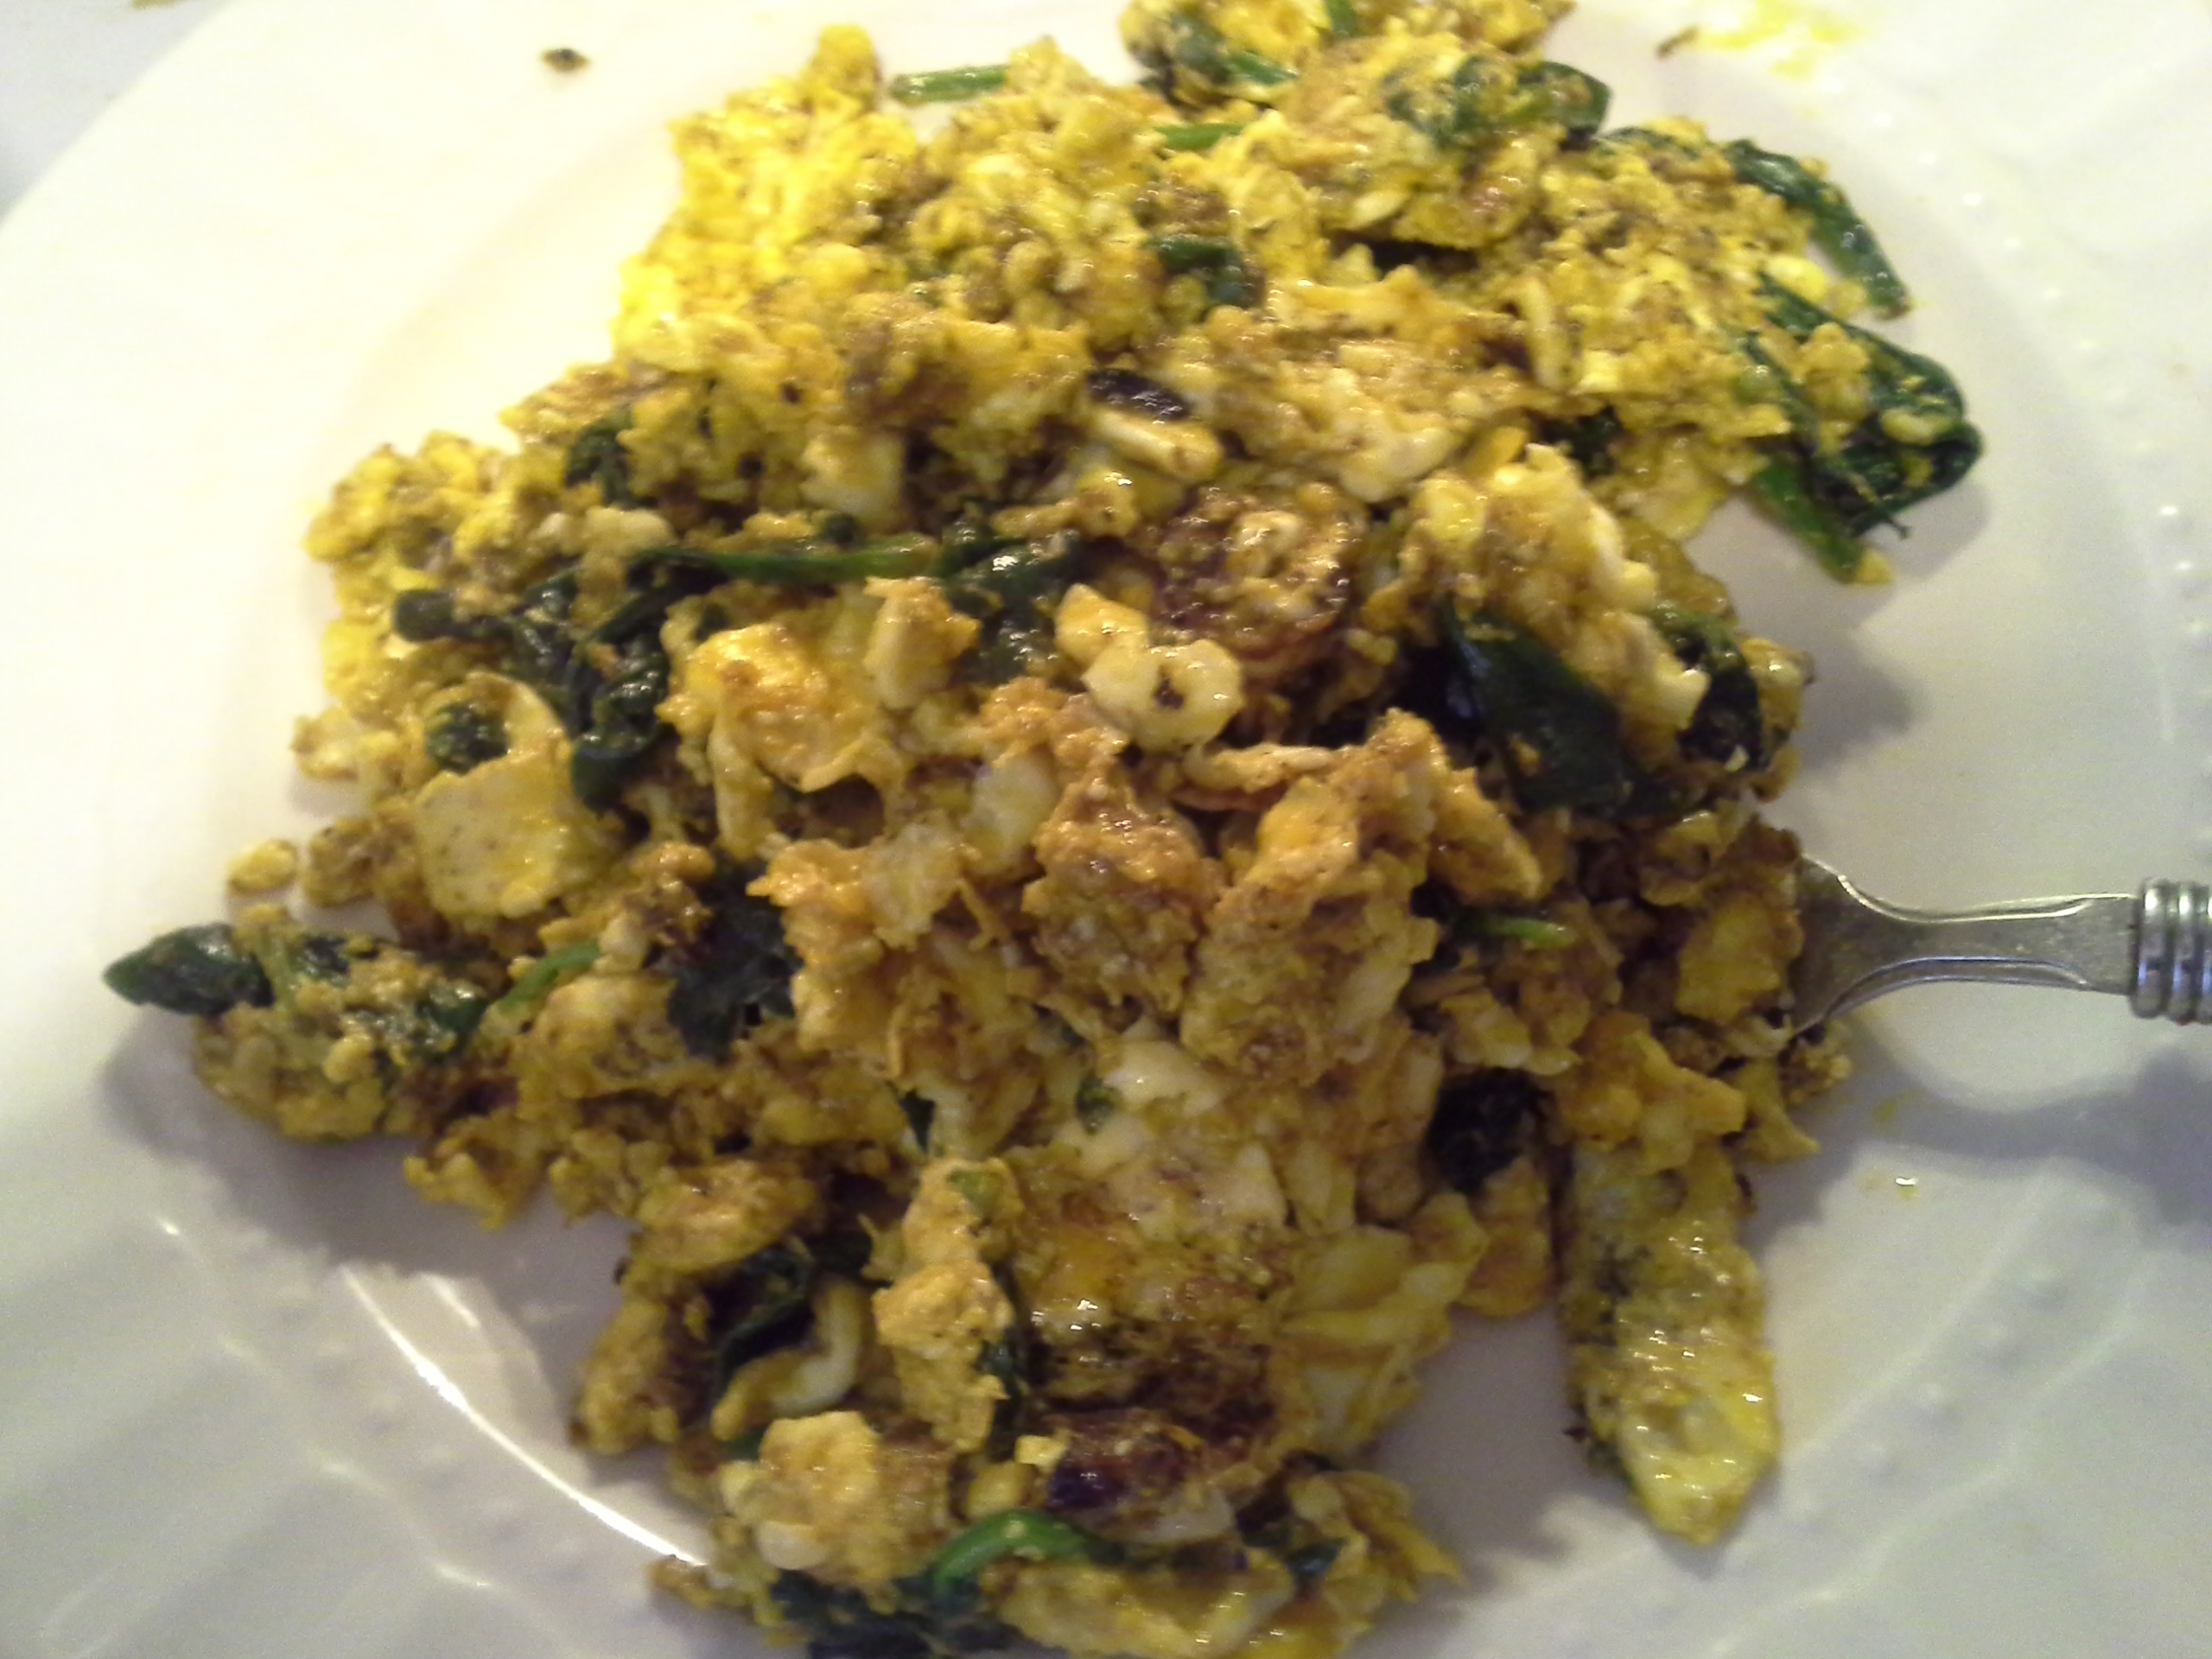 Lunch: 2:55 p.m. | 4 eggs, 2 oz. baby spinach, 2 Tbsp. red palm oil, herbs & spices